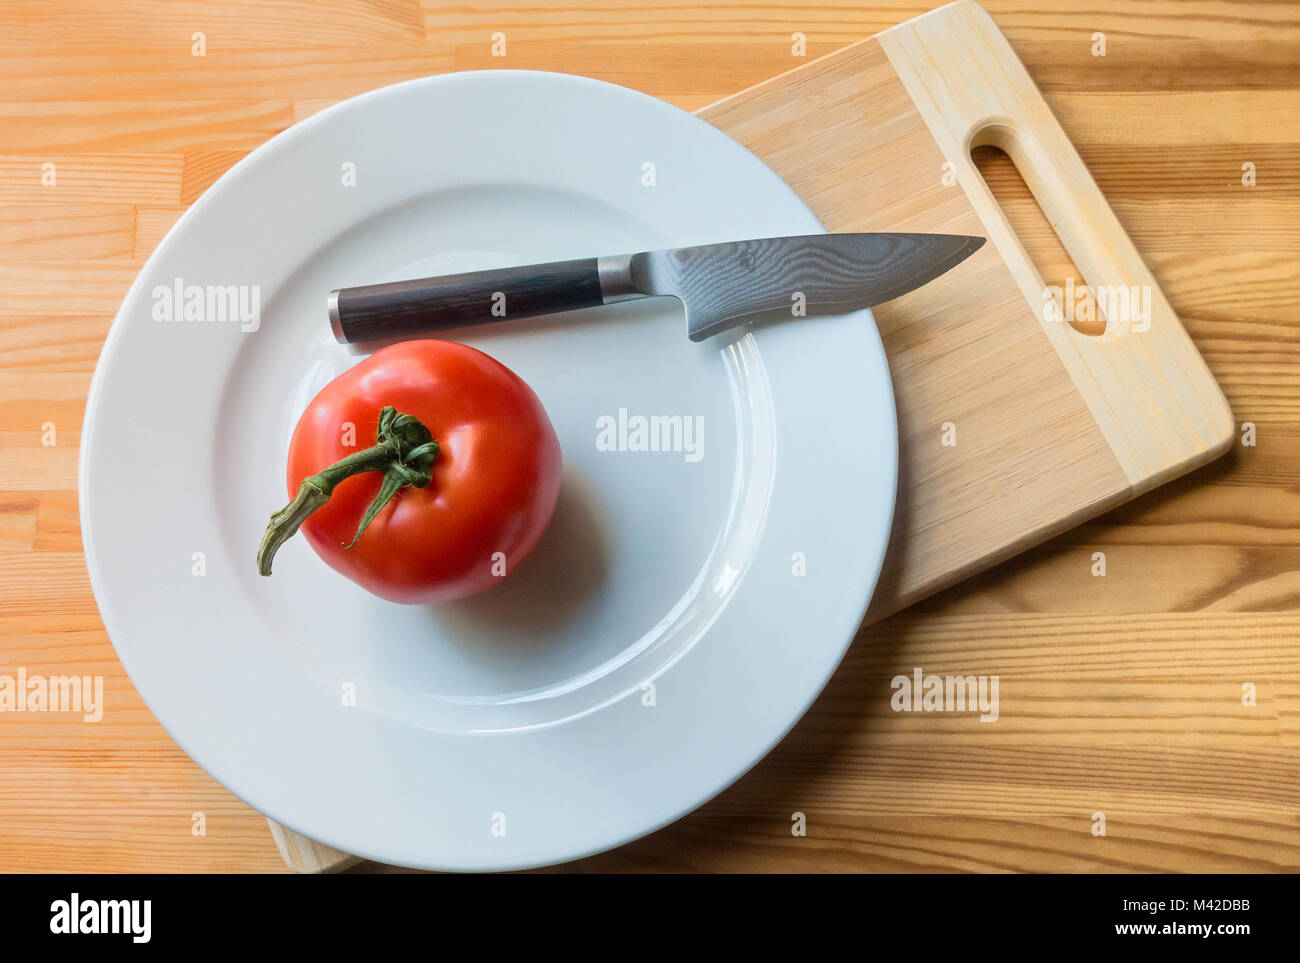 A large vine-ripened tomato on a white plate with knife and cutting board - Stock Image